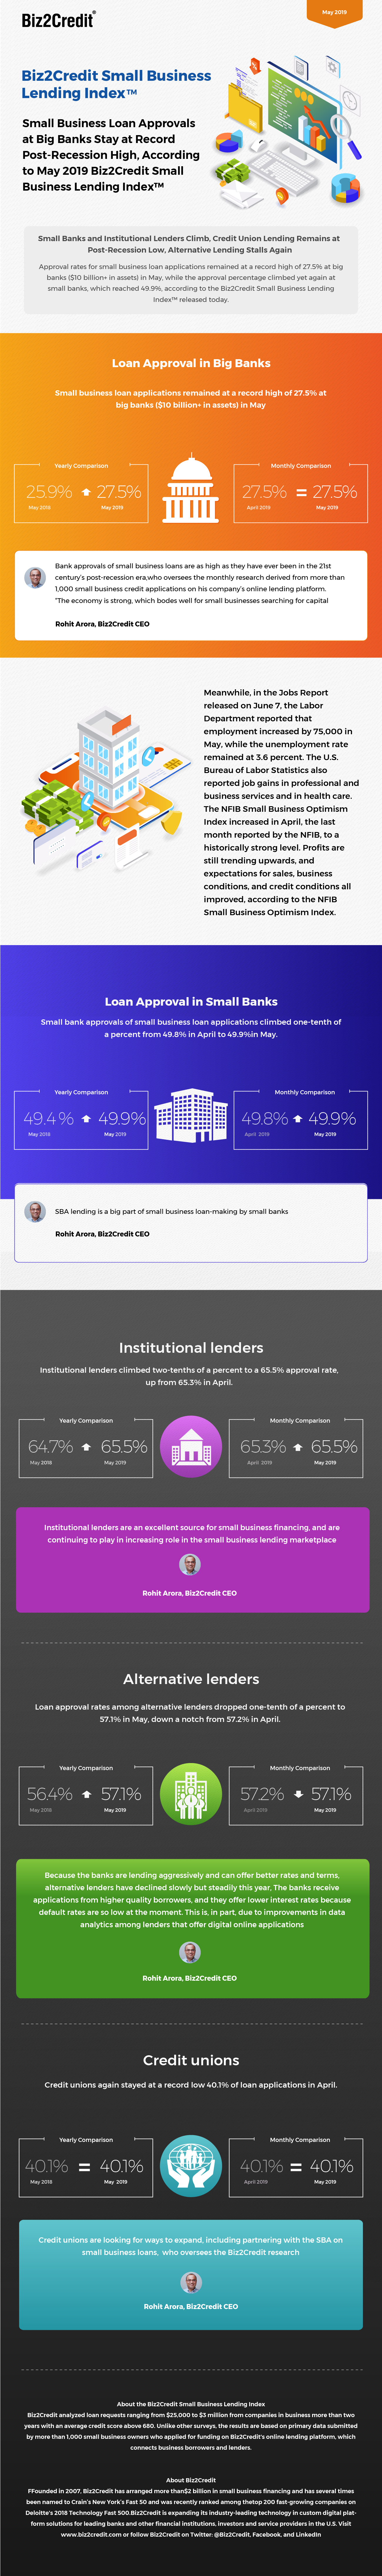 May 2019 Lending Index Infographic